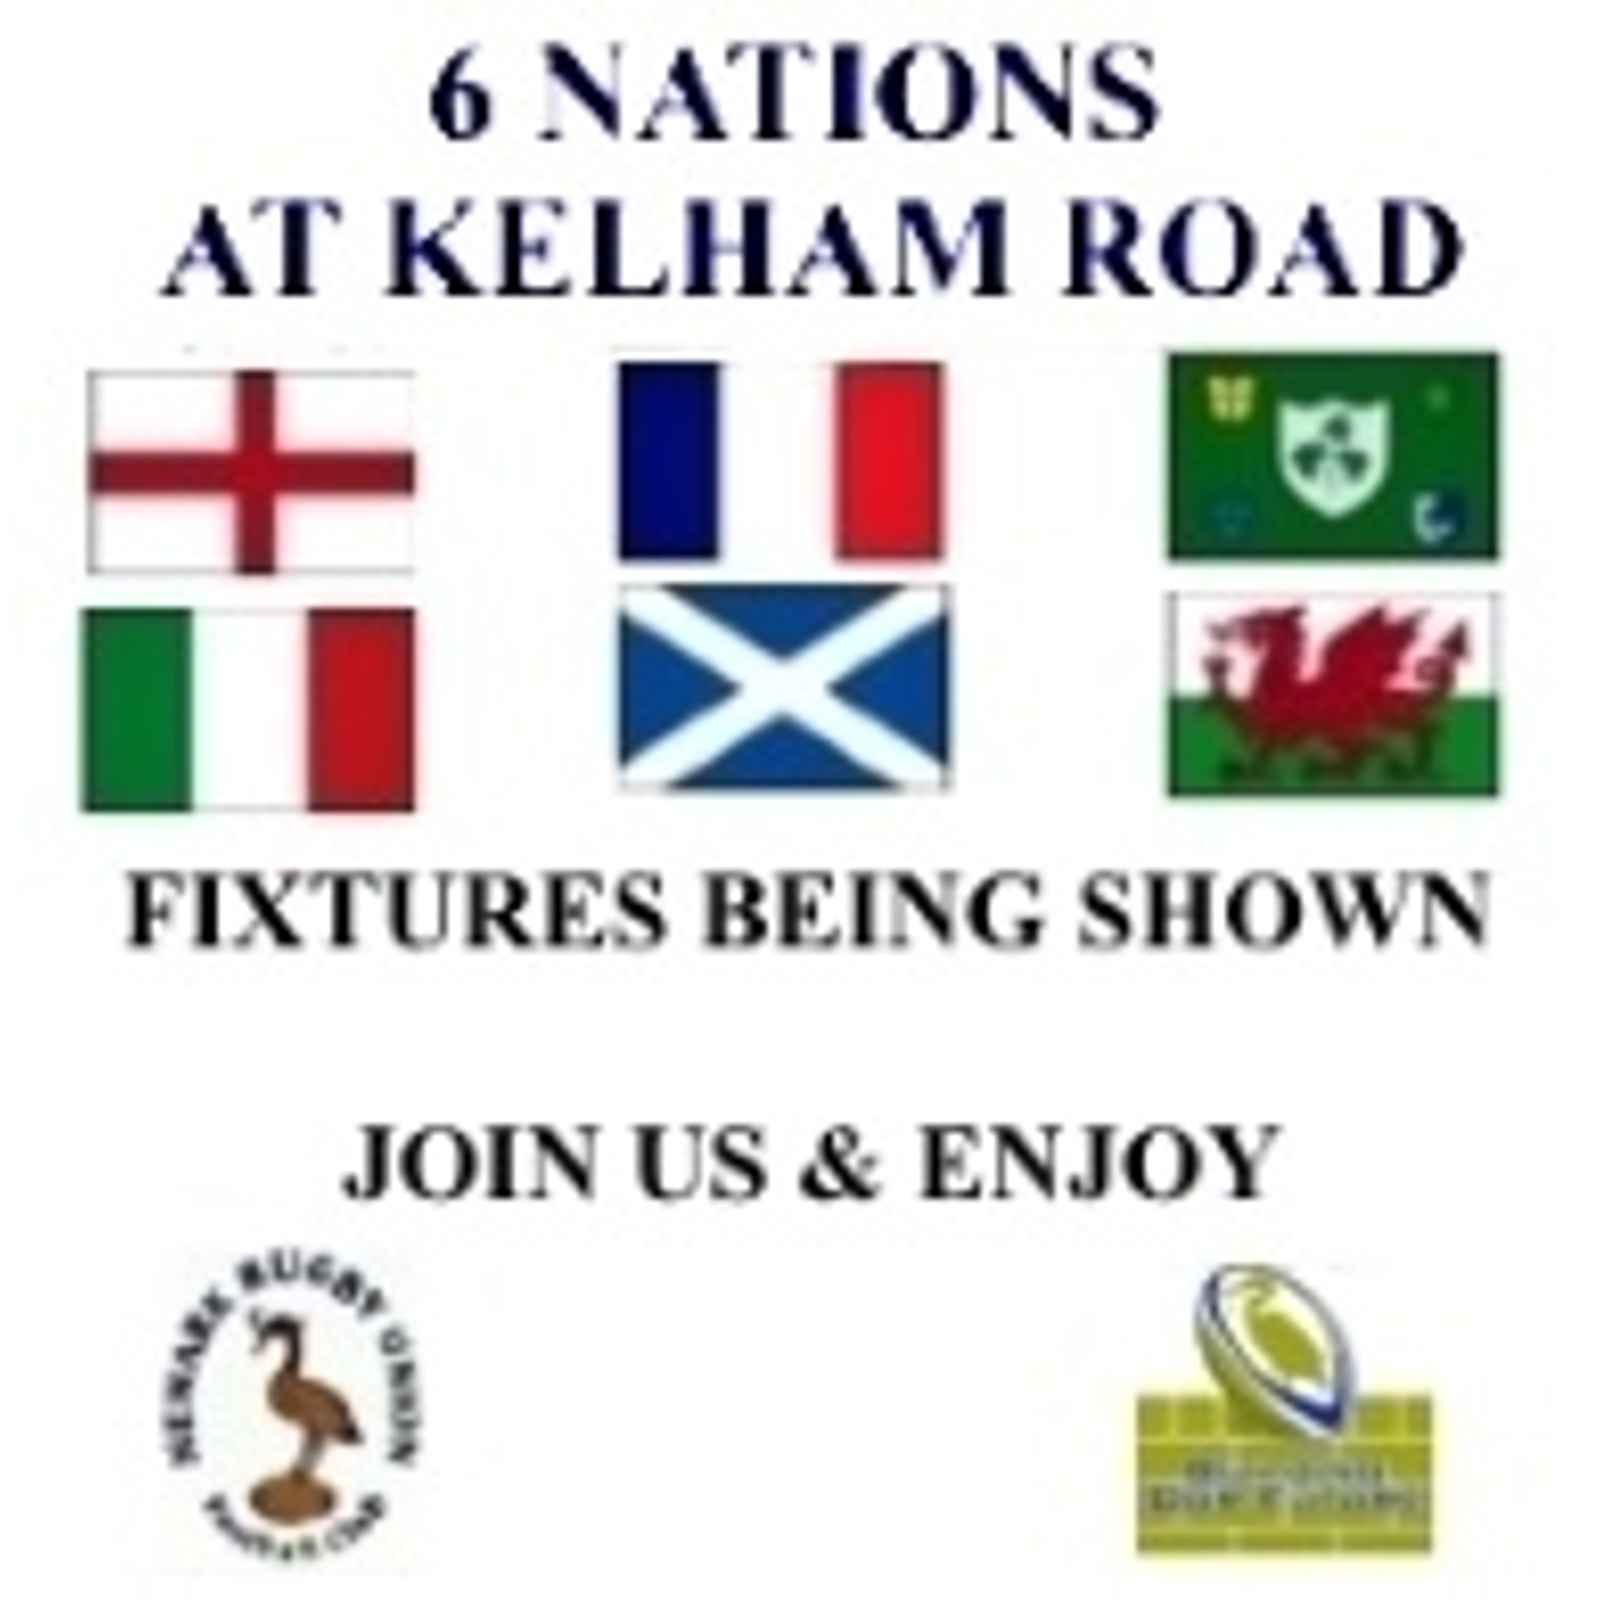 WATCH 6 NATIONS GAMES